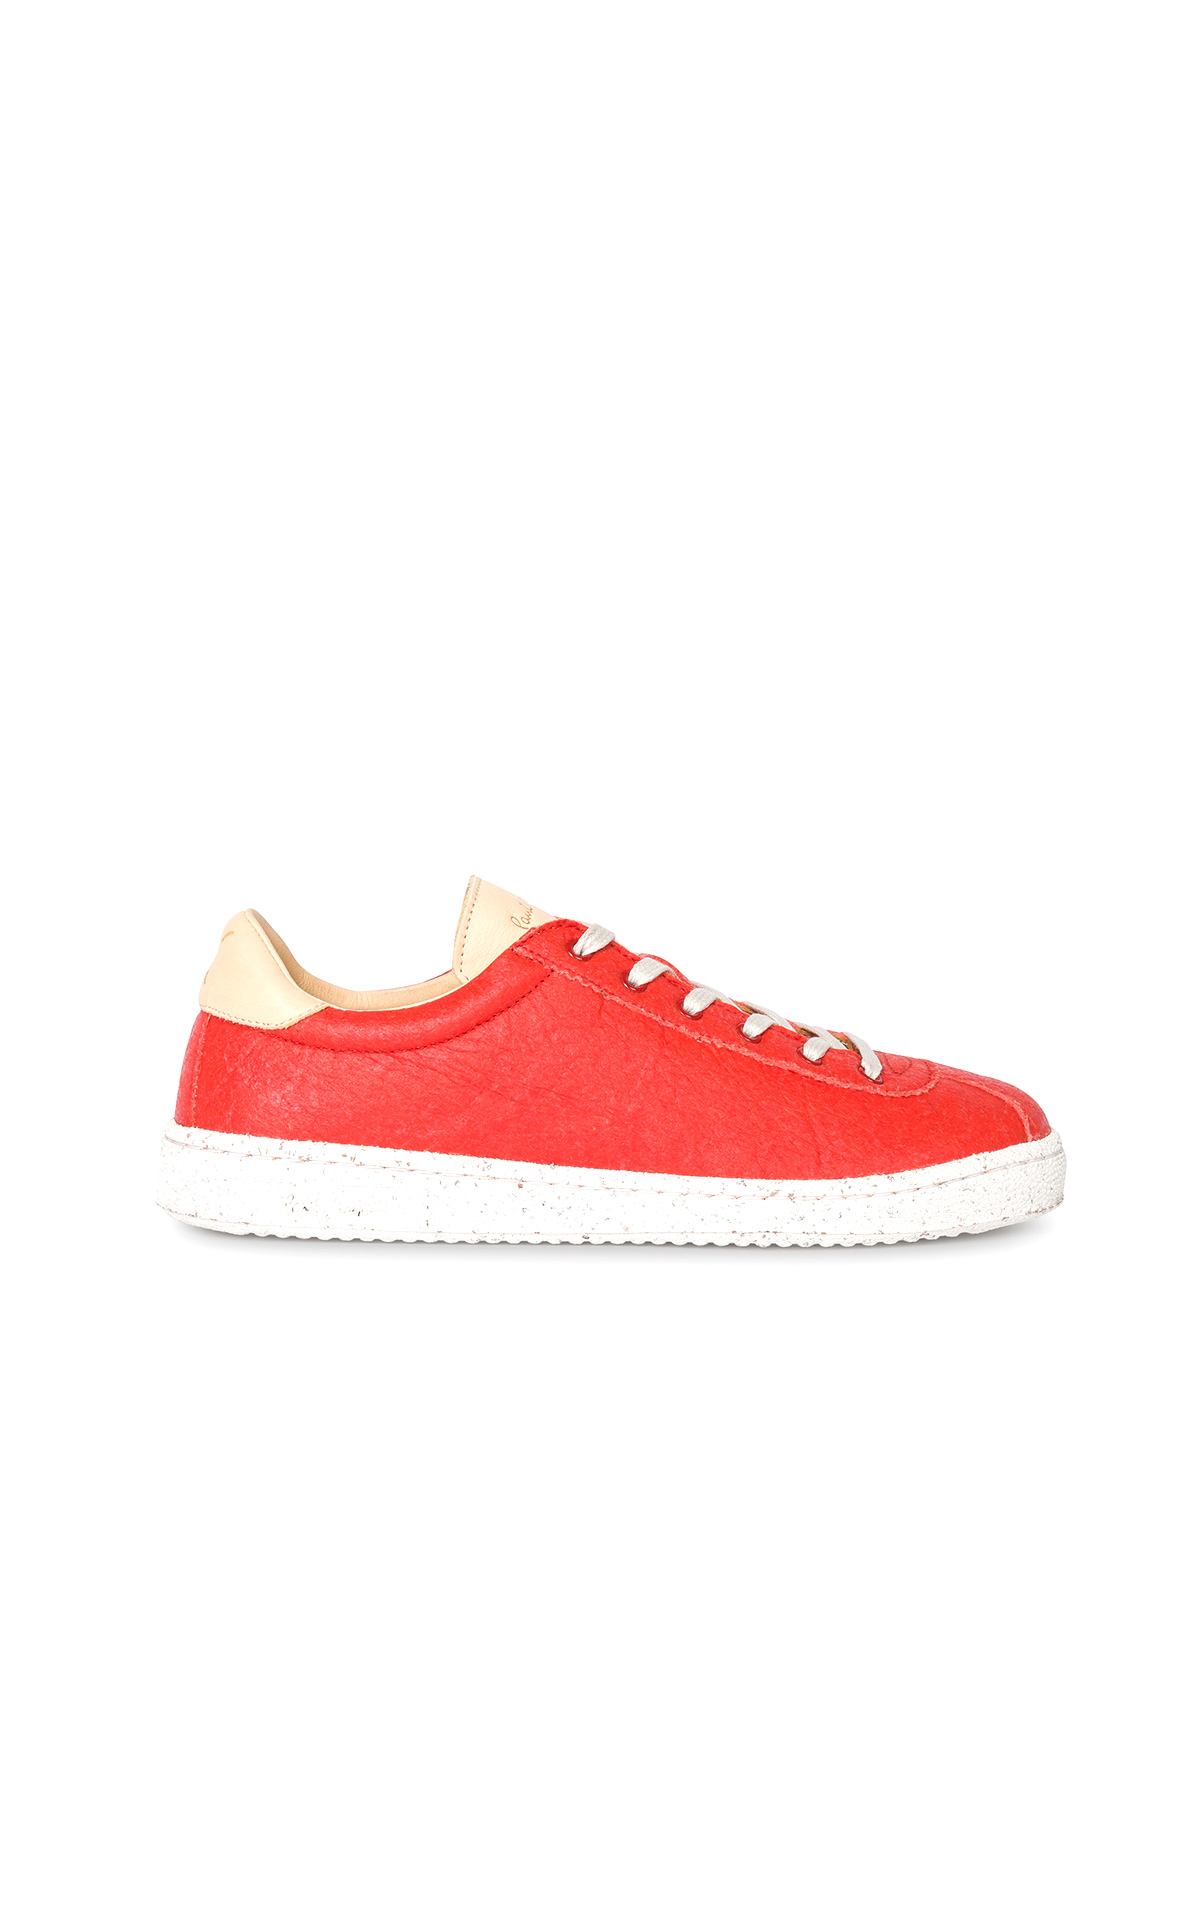 La Vallée Village Paul Smith Orange Dusty sneakers